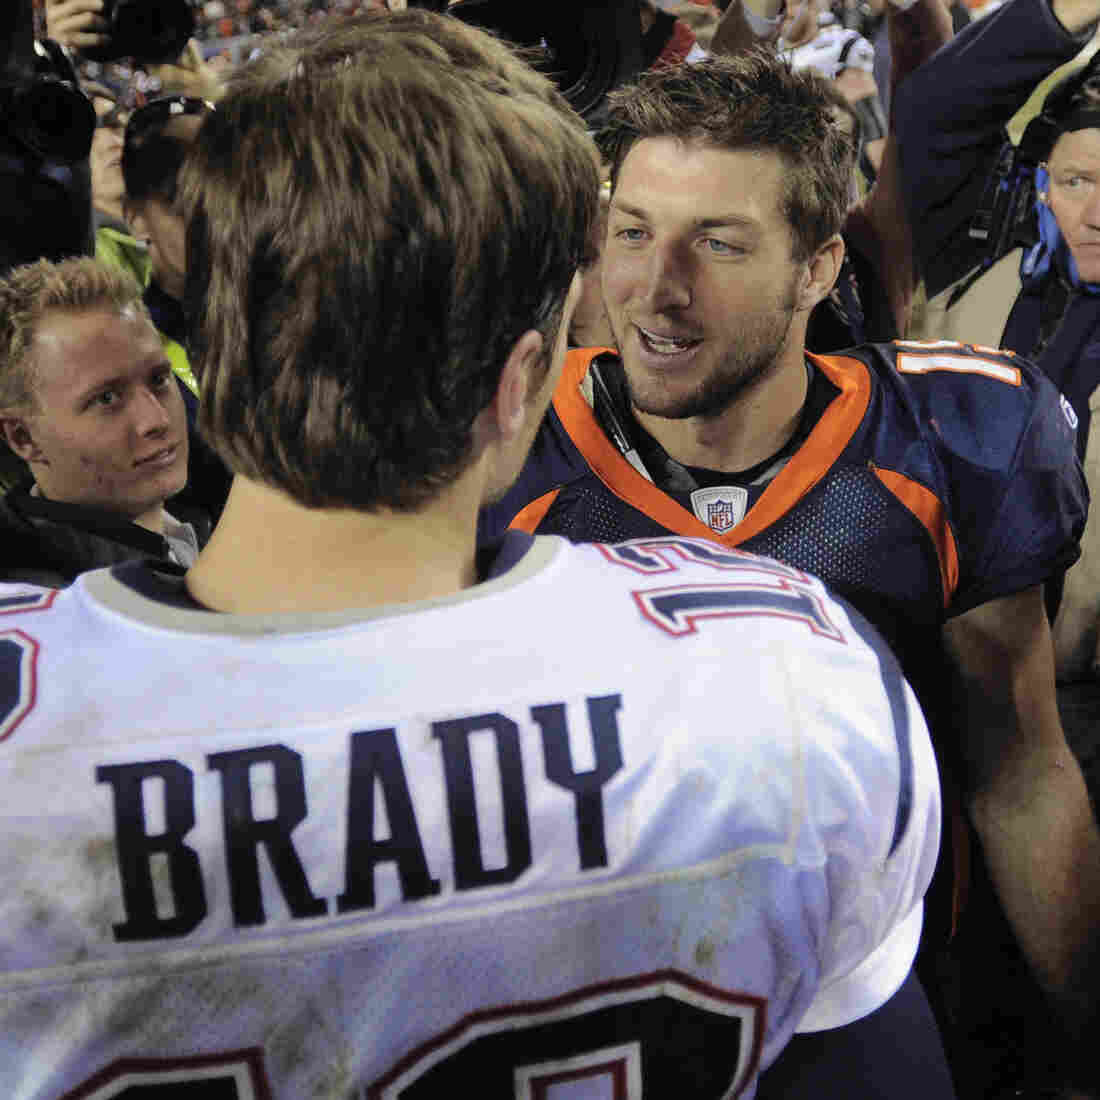 Tim Tebow (right) shakes hands with New England Patriots quarterback Tom Brady after the Patriots defeated the Broncos on Dec. 18, 2011. Now, they're due to be teammates.